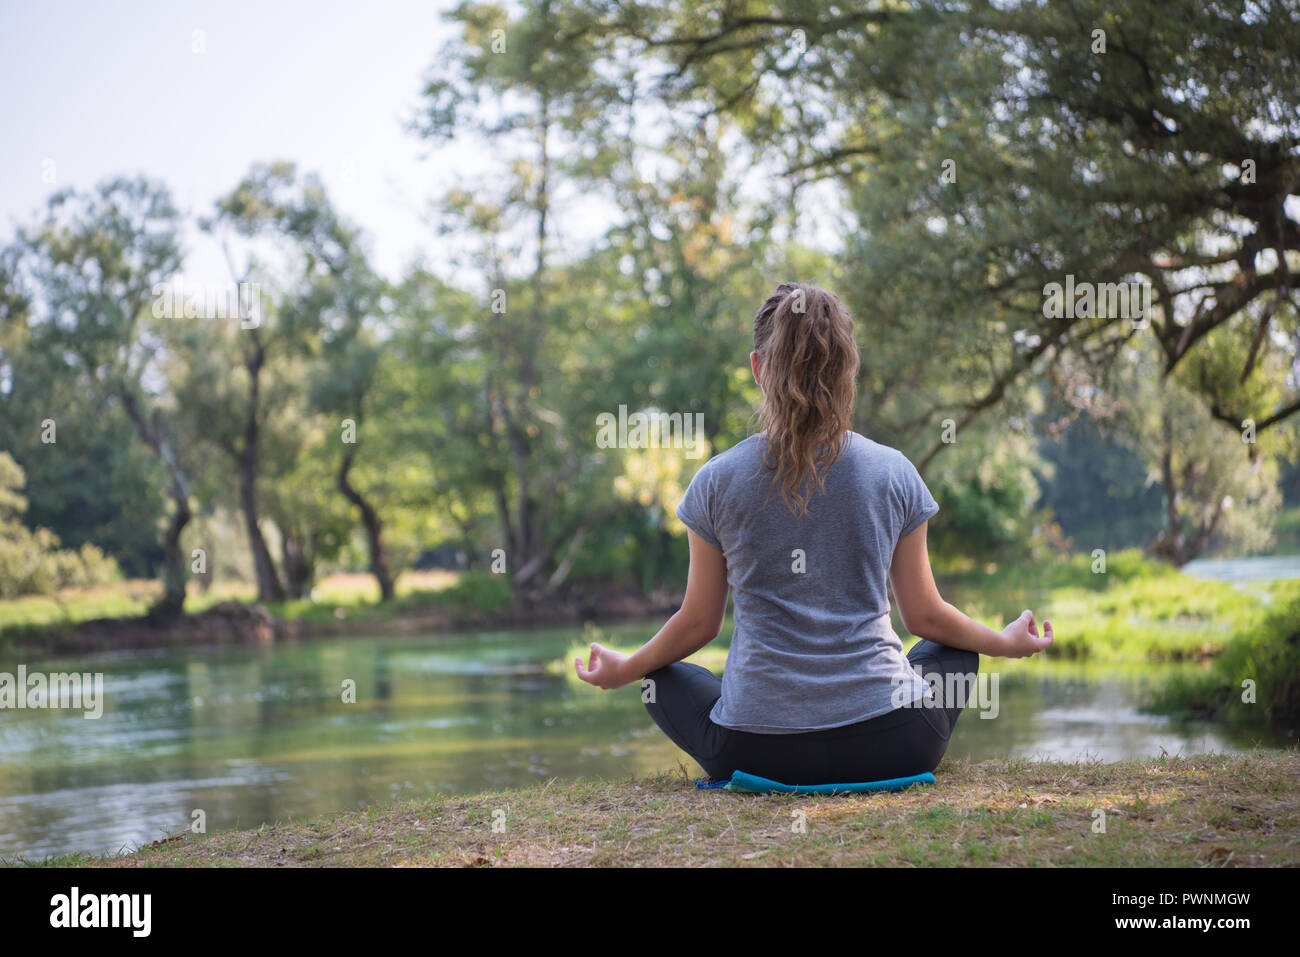 Healthy Woman Relaxing While Meditating And Doing Yoga Exercise In The Beautiful Nature On The Bank Of The River Stock Photo Alamy